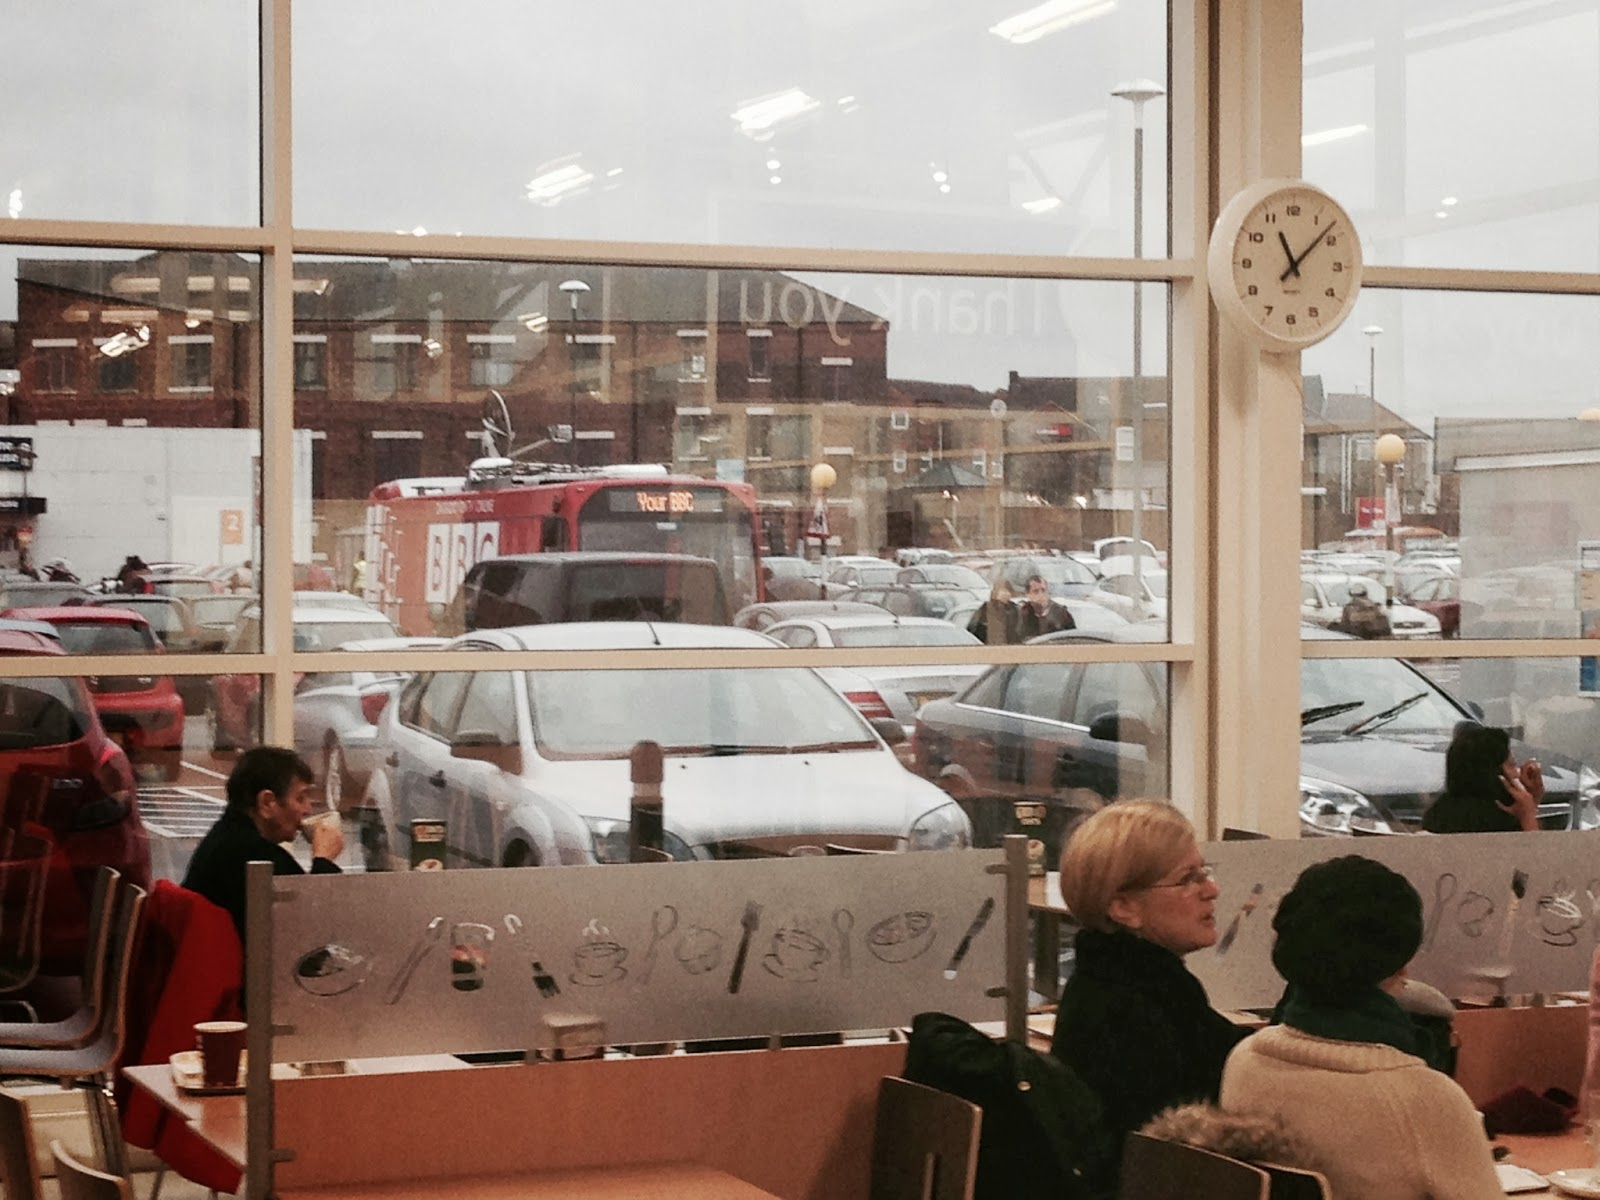 BBC Bus viewed from inside Tesco, Longton